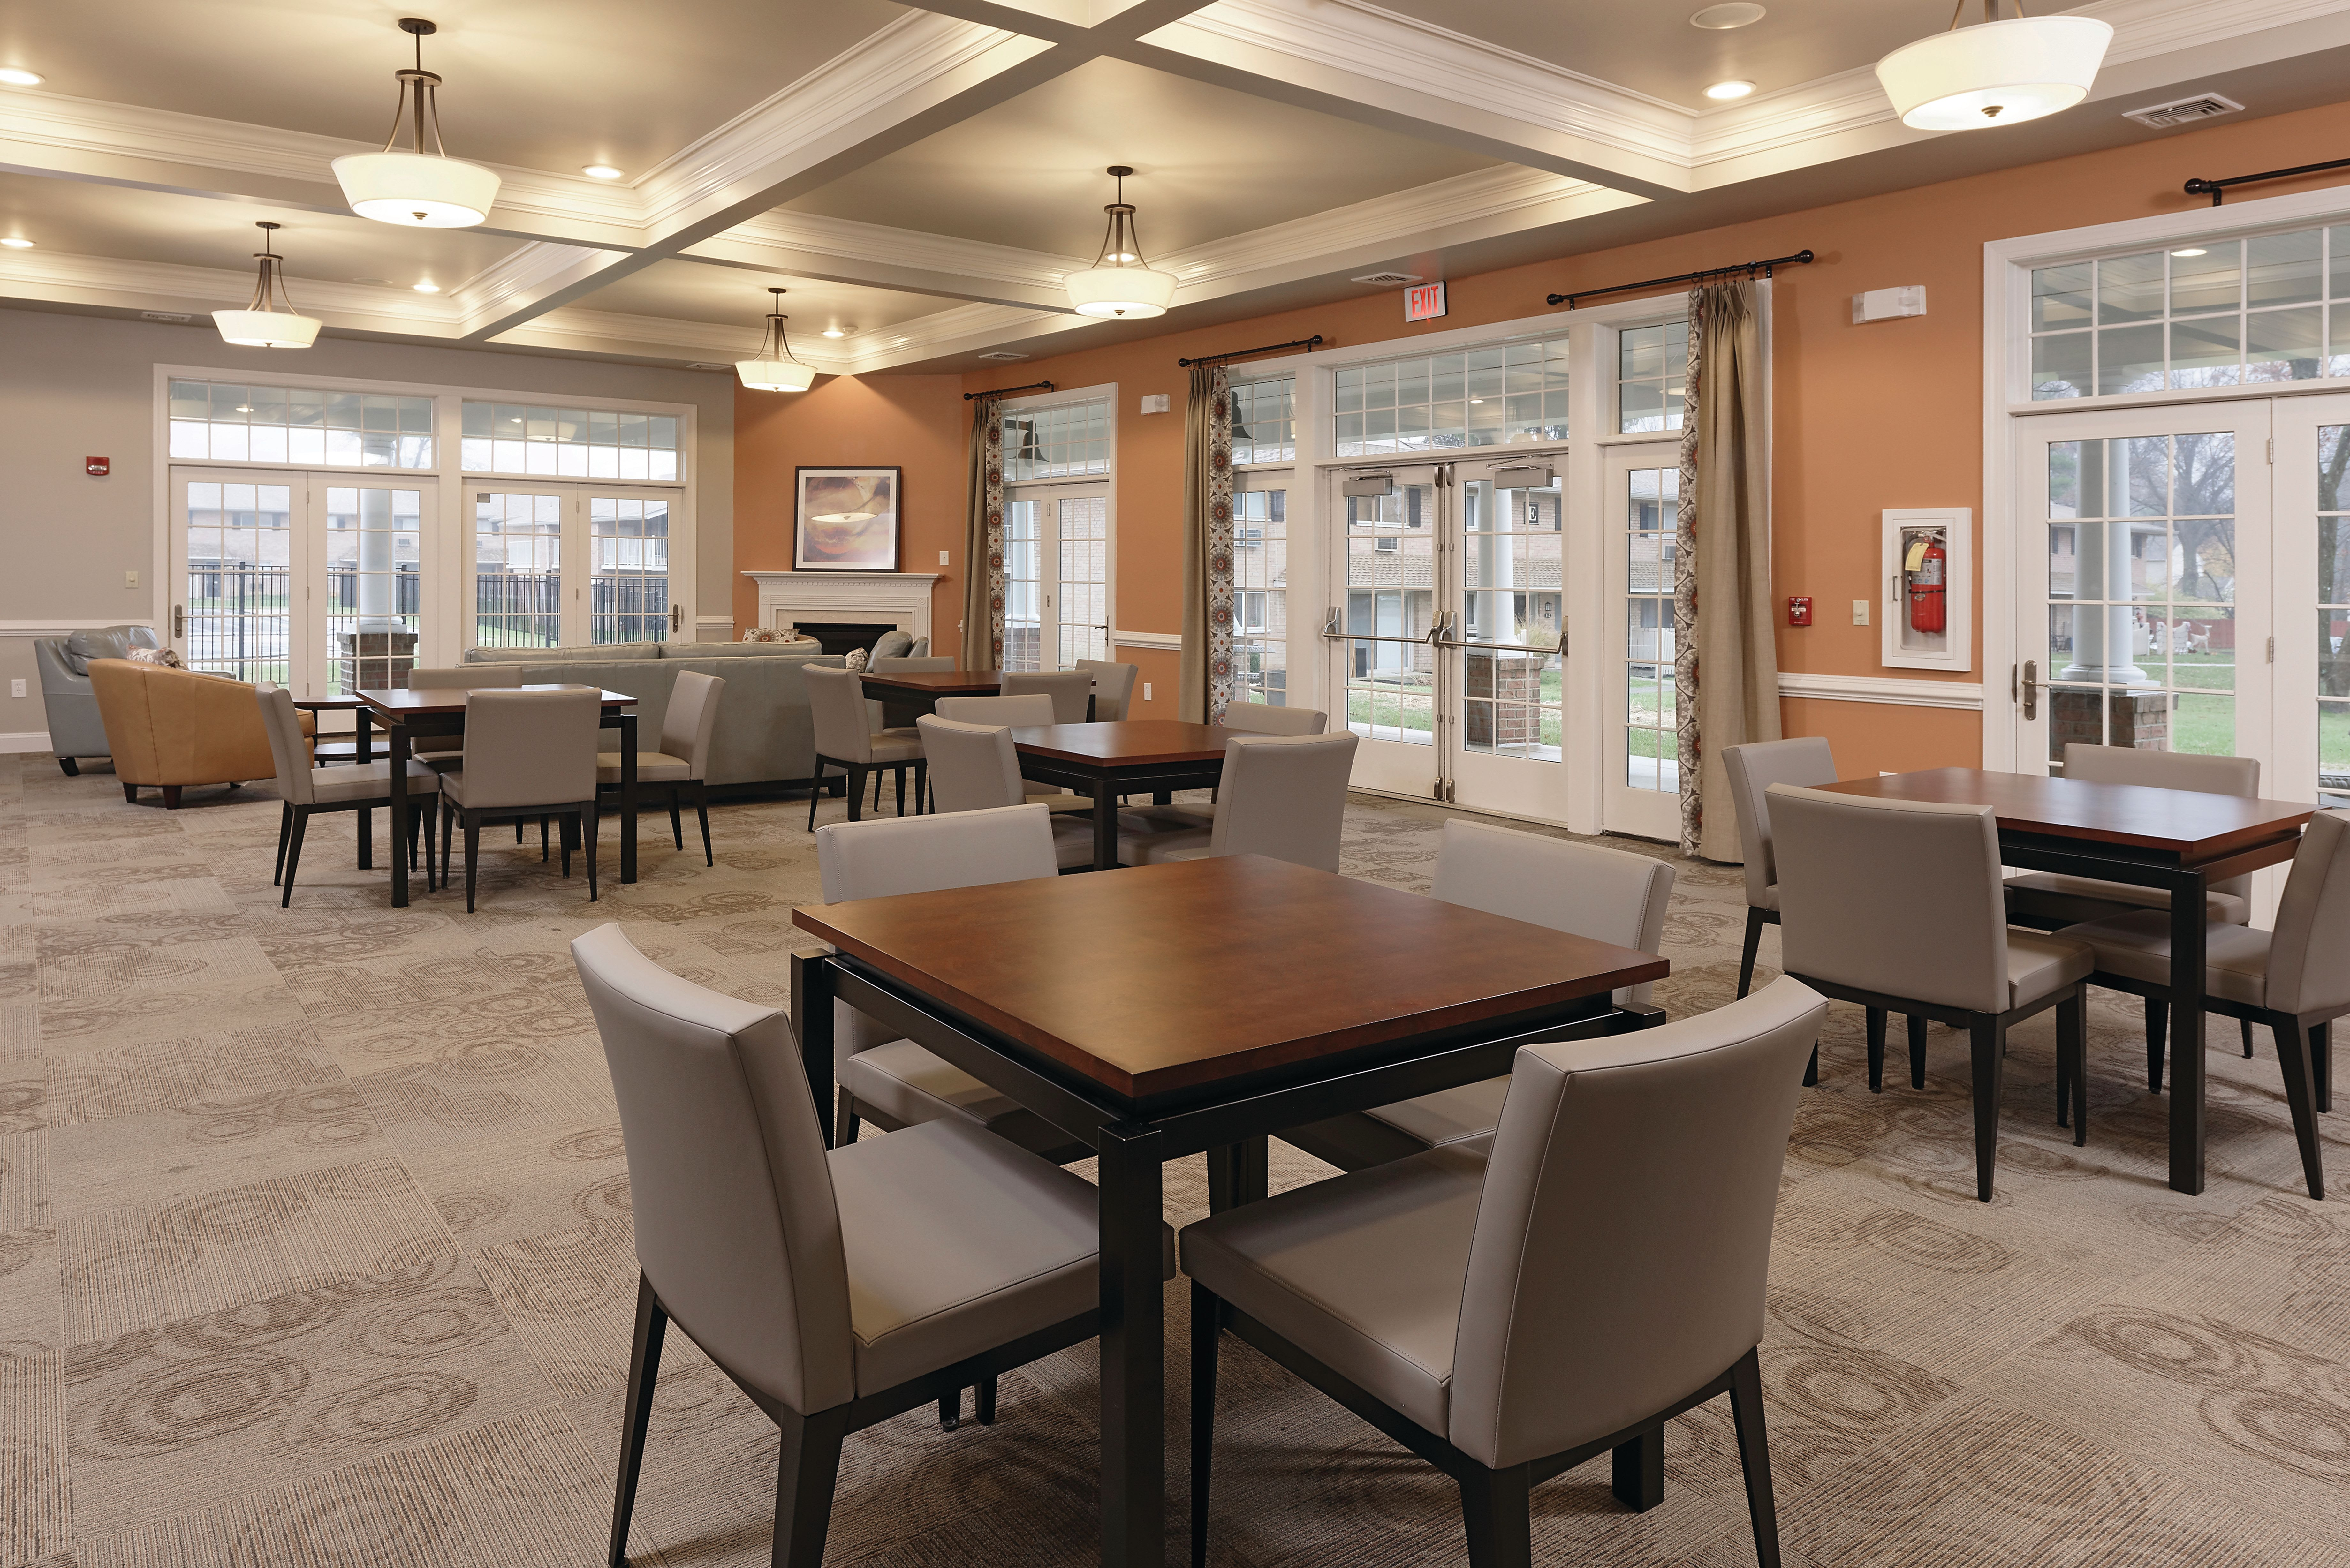 Tables and chairs inside community clubhouse at Golf Club Apartments in West Chester, Pennsylvania